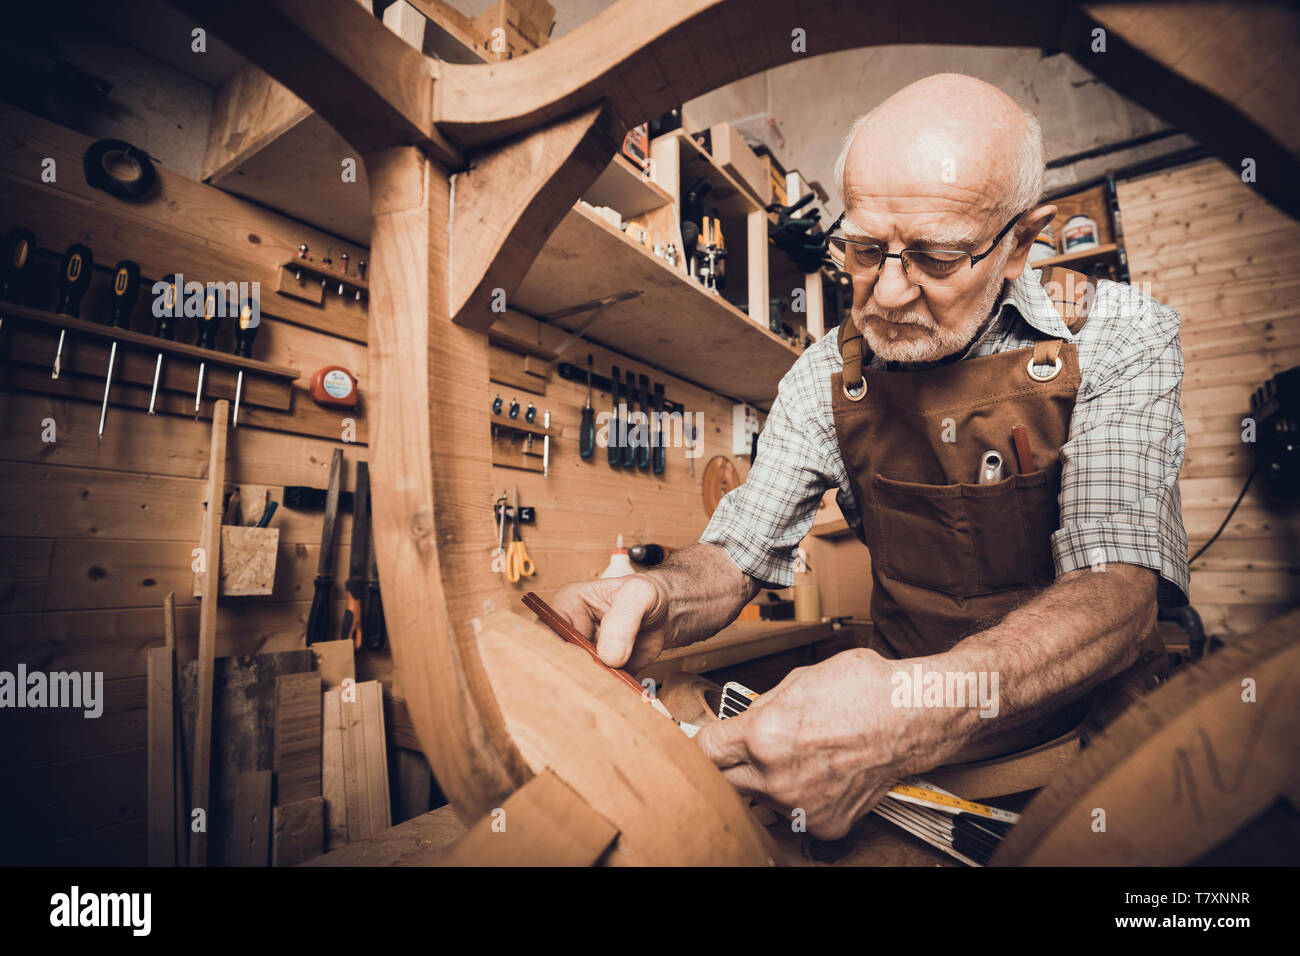 An old carpenter takes measurements at a chair to be restored, a workshop with tools in the background. - Stock Image